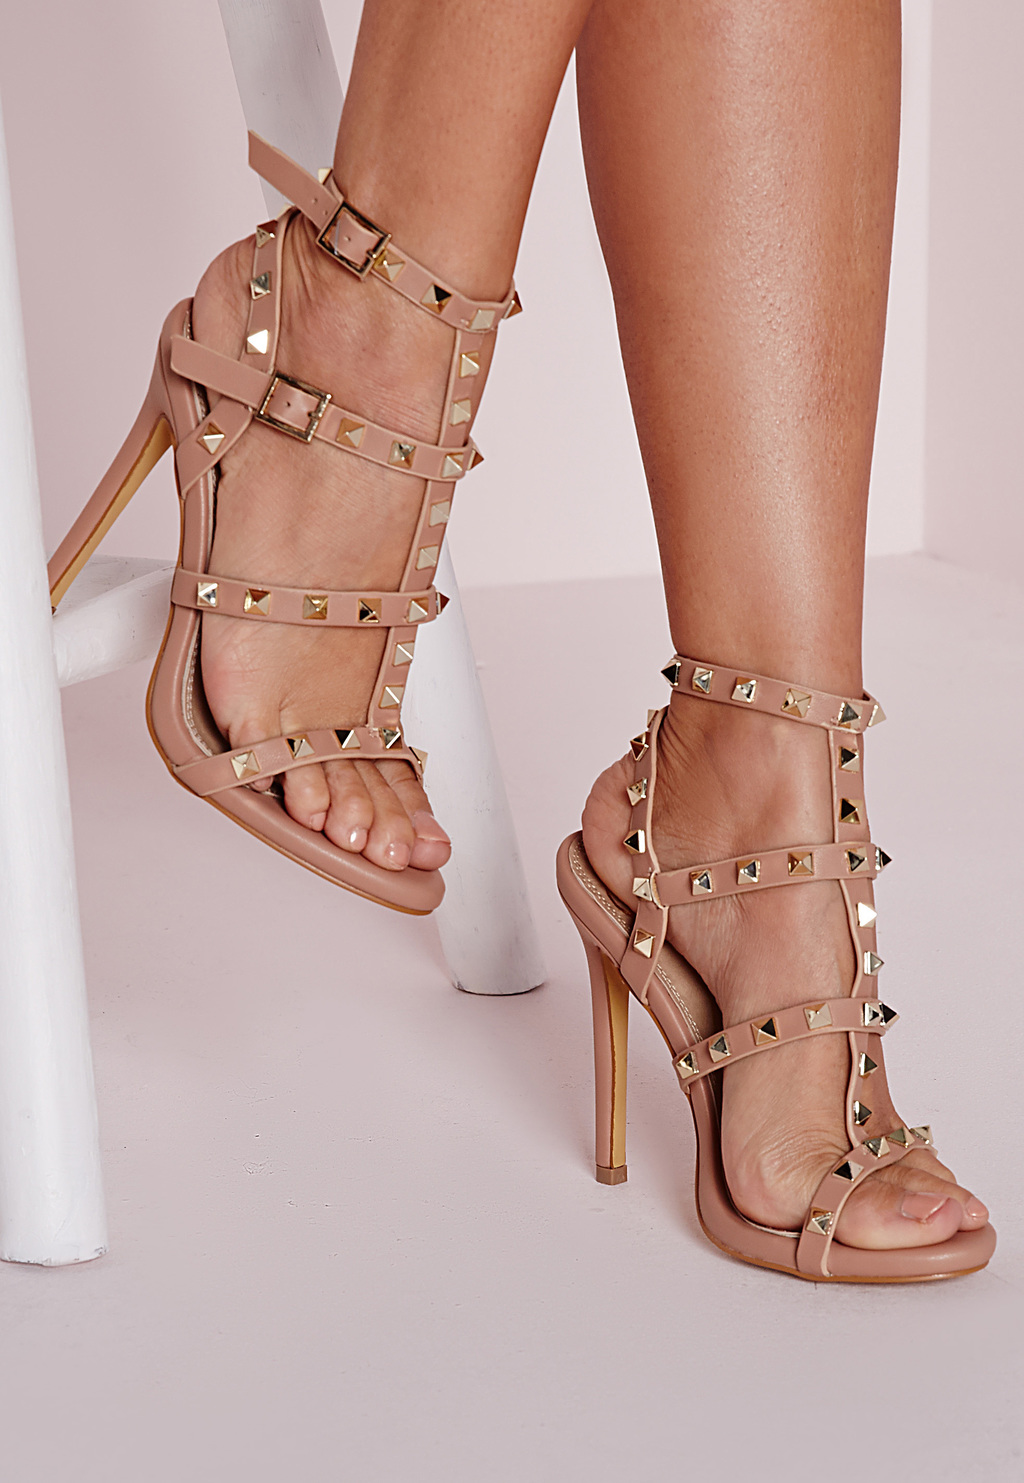 Studded Heeled Gladiator Sandals Blush, Pink - predominant colour: nude; secondary colour: gold; occasions: evening, occasion; material: faux leather; heel height: high; embellishment: studs; ankle detail: ankle strap; heel: stiletto; toe: open toe/peeptoe; style: gladiators; finish: patent; pattern: plain; season: s/s 2016; wardrobe: event